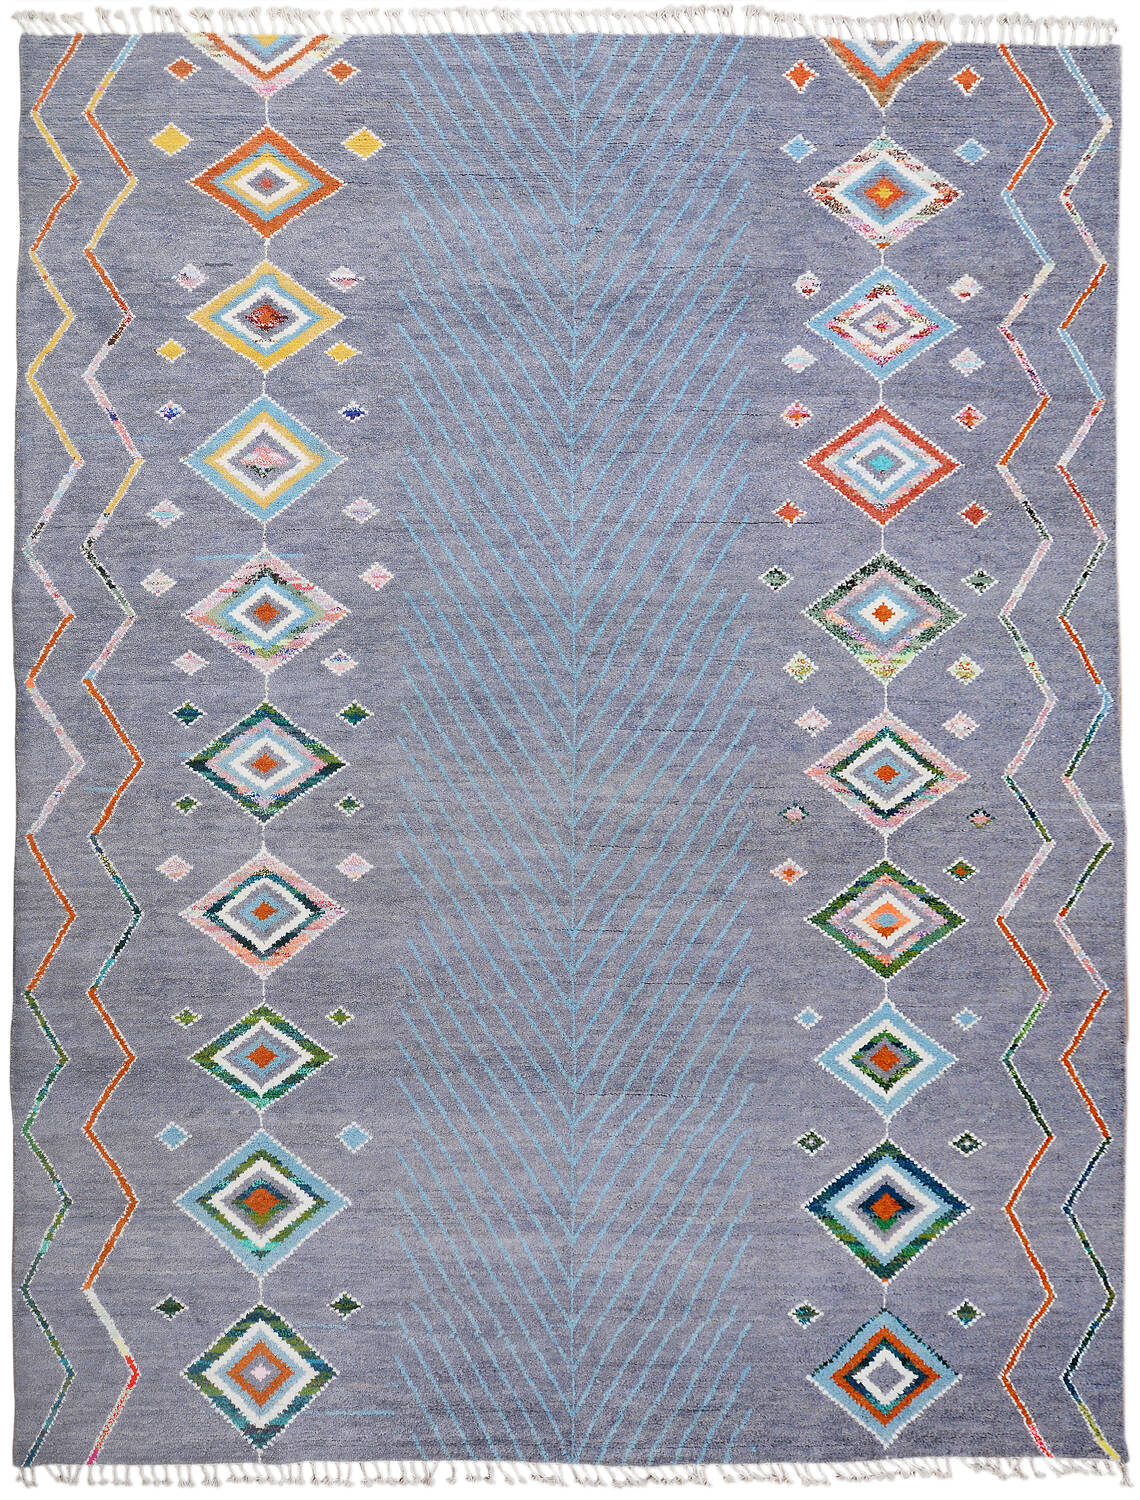 10x15 Room: Southwest Moroccan Area Rug 10x15 Large